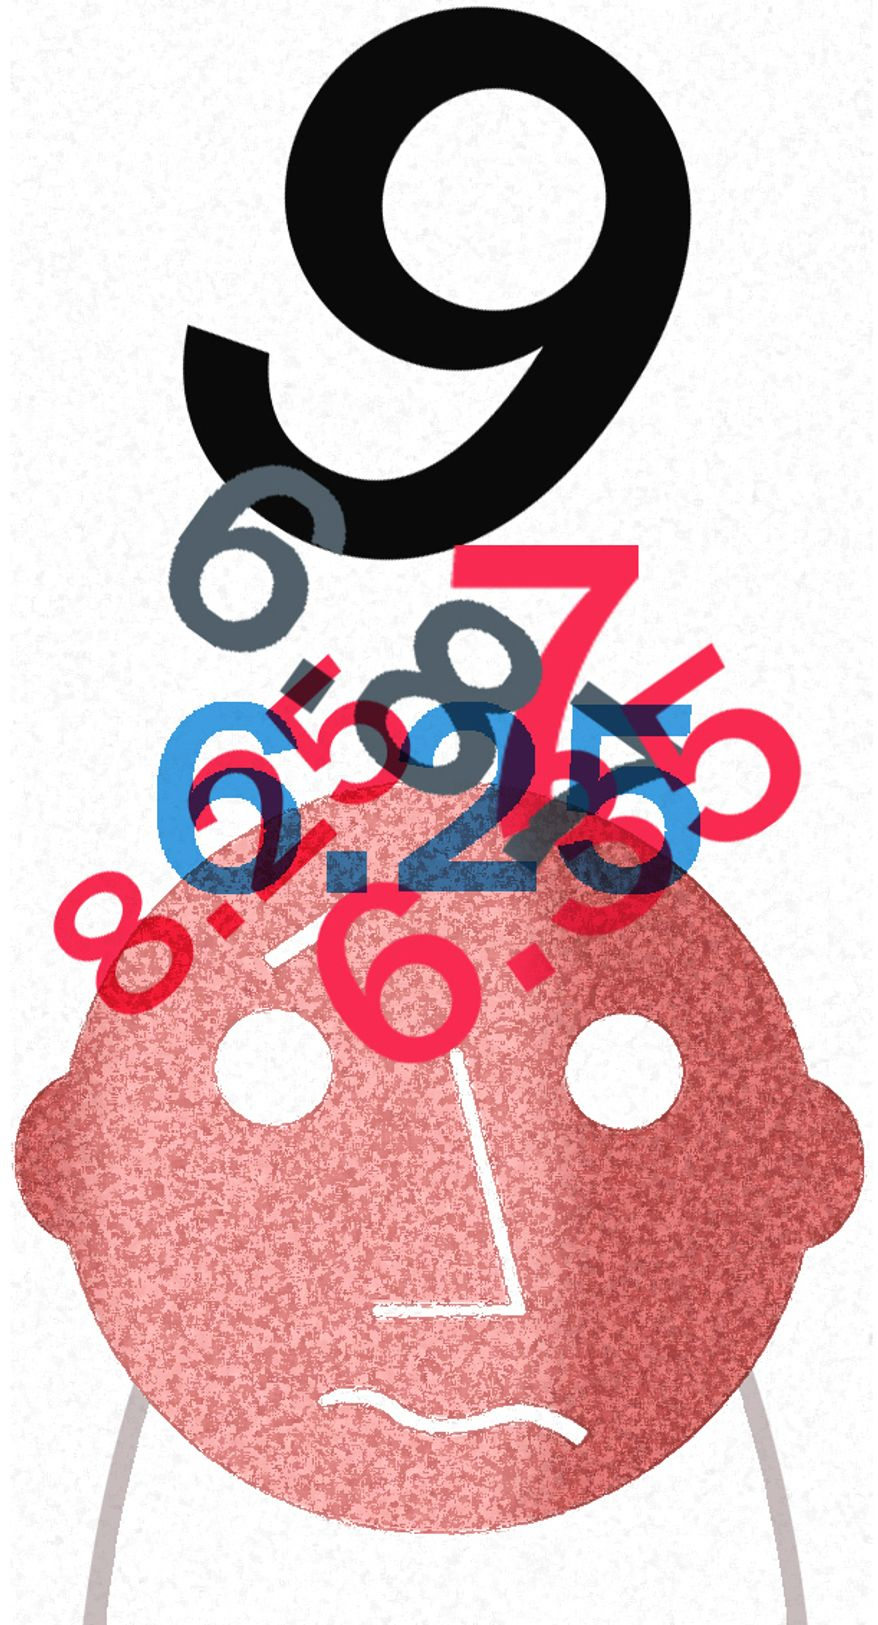 Illustration: Cain's 9-9-9 plan by Alexander Hunter for The Washington Times